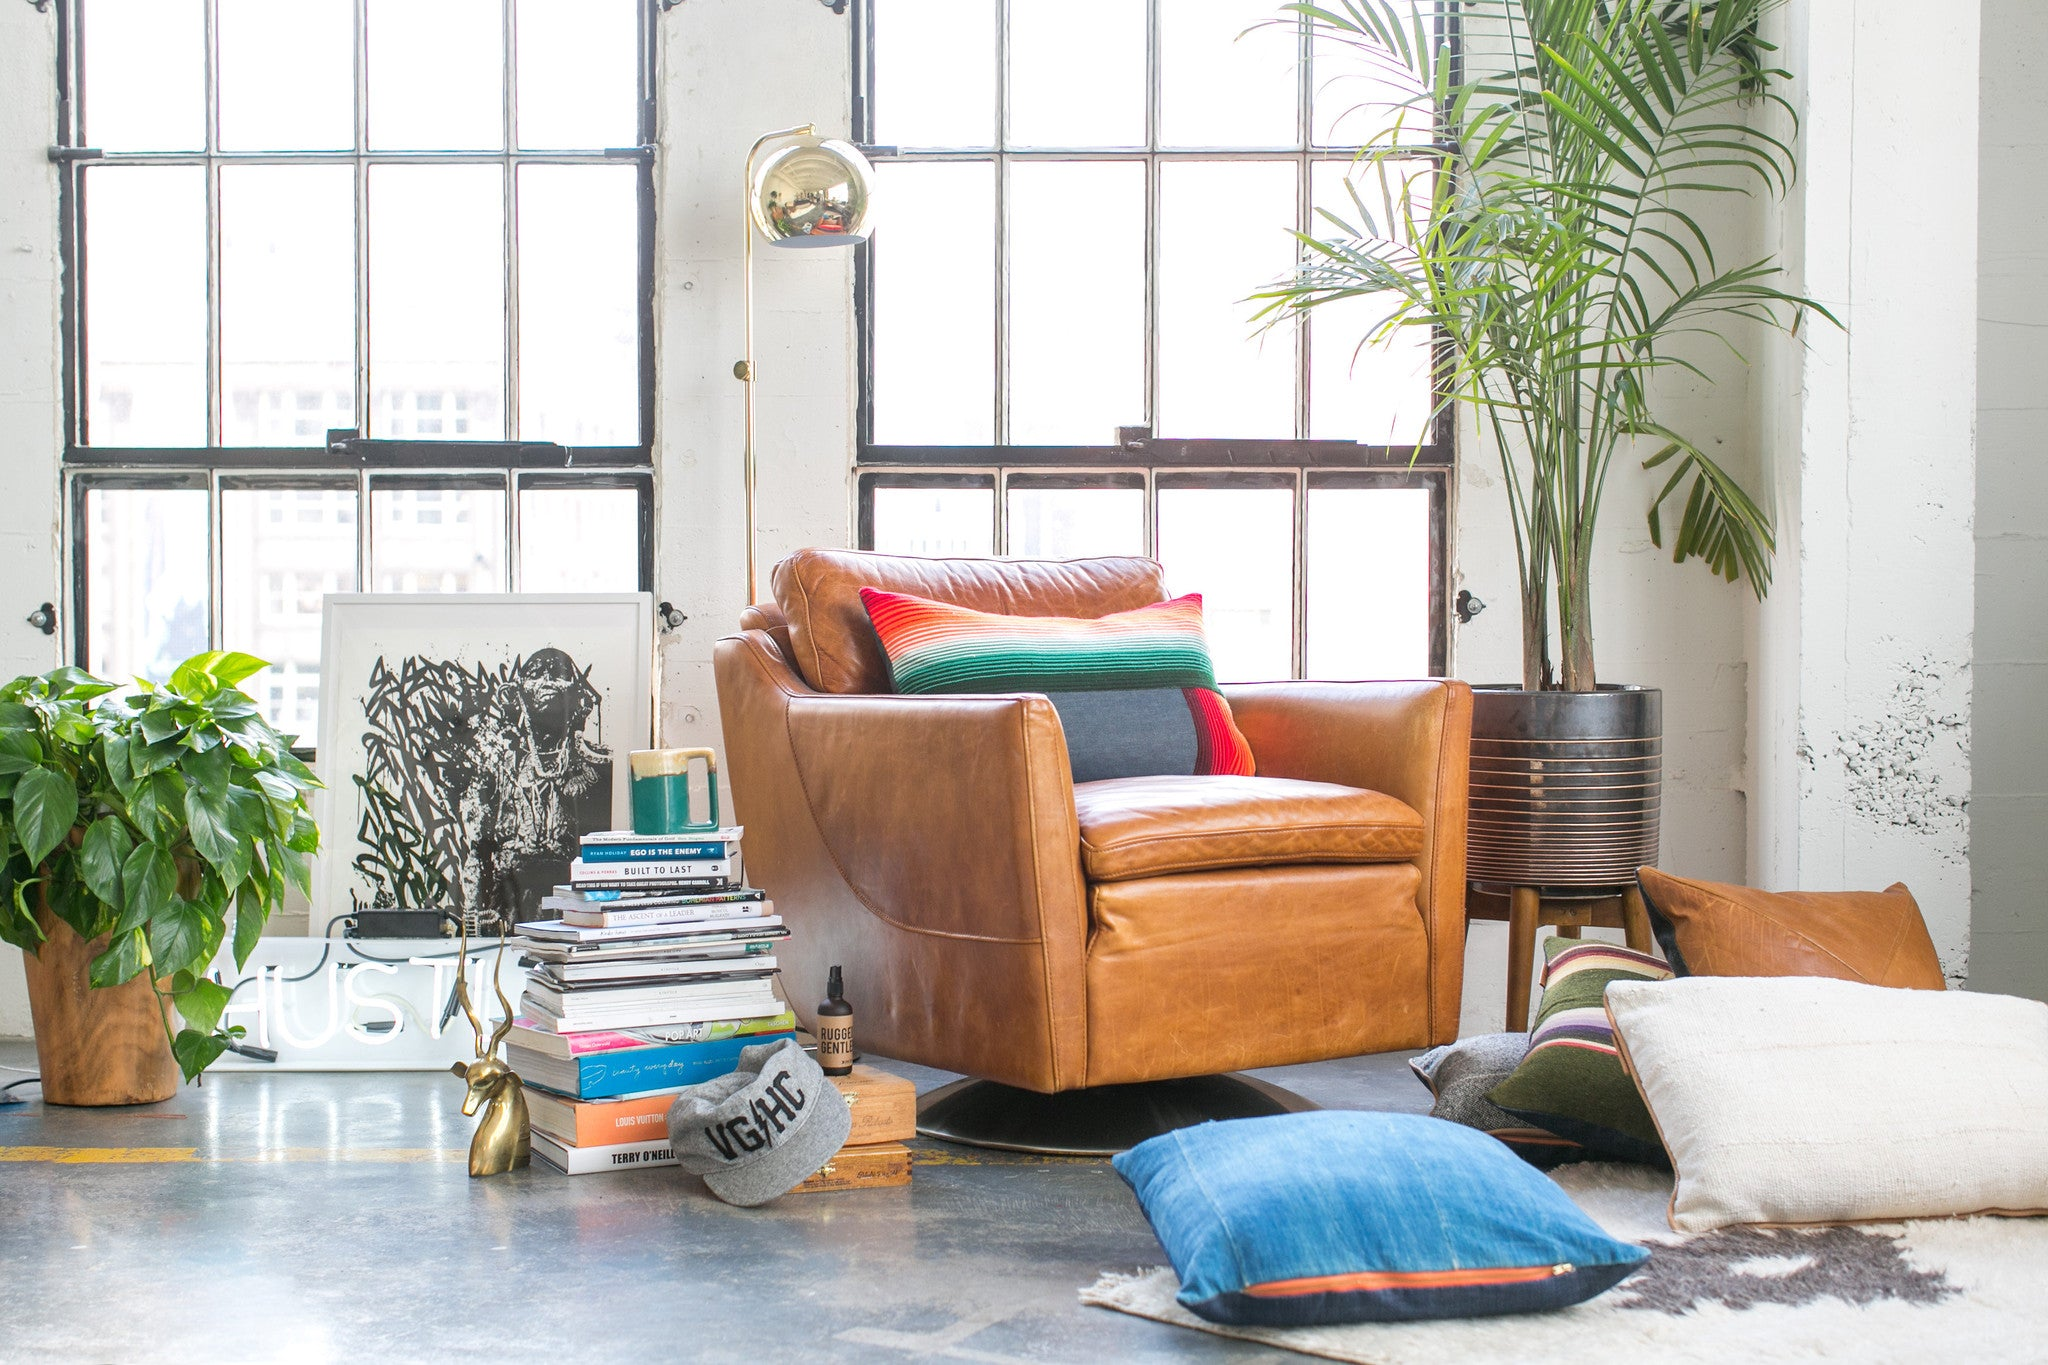 Wonderful So Forget The Fancy Words That No One Really Understands Or Cares About,  And Focus On The Decorating Tips That Truly Count, And Turn That Frat Boy  Flat Into ...